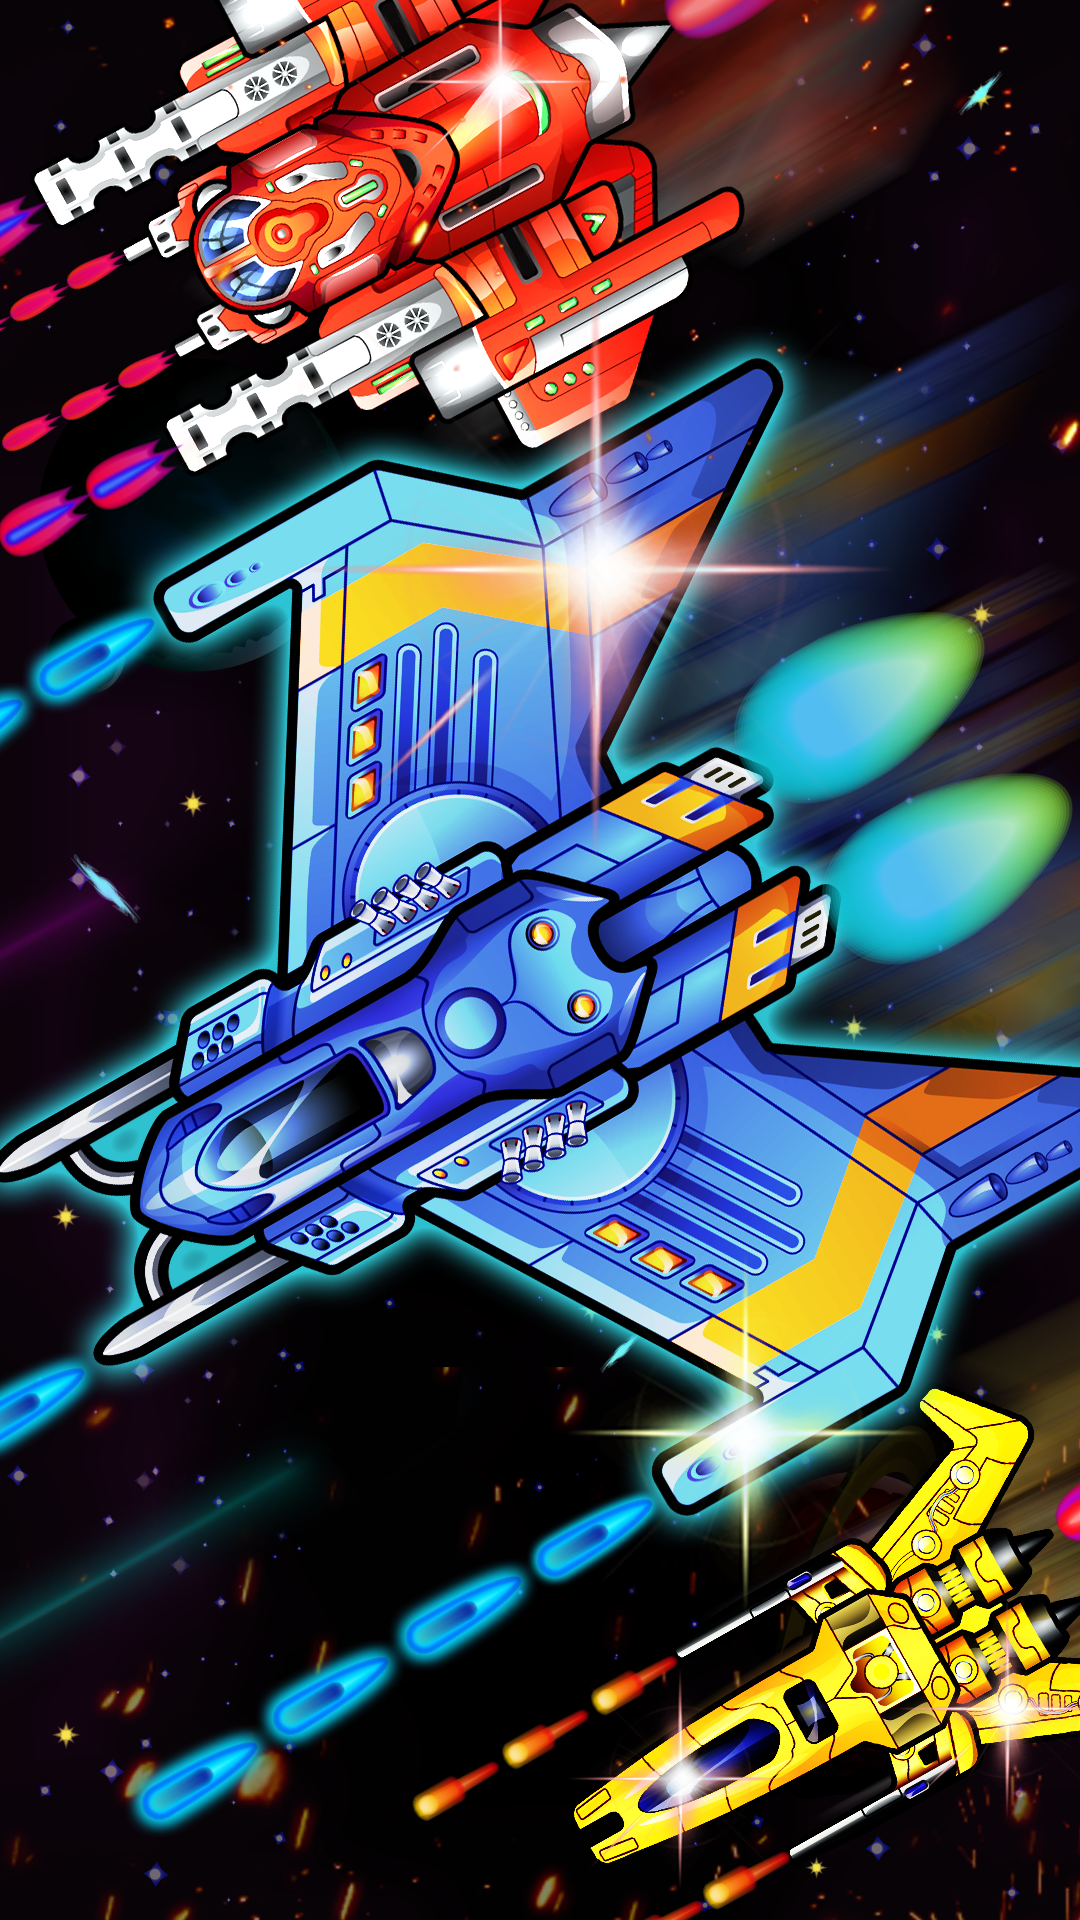 Planet Warfare - Space Shooter Arcade Game